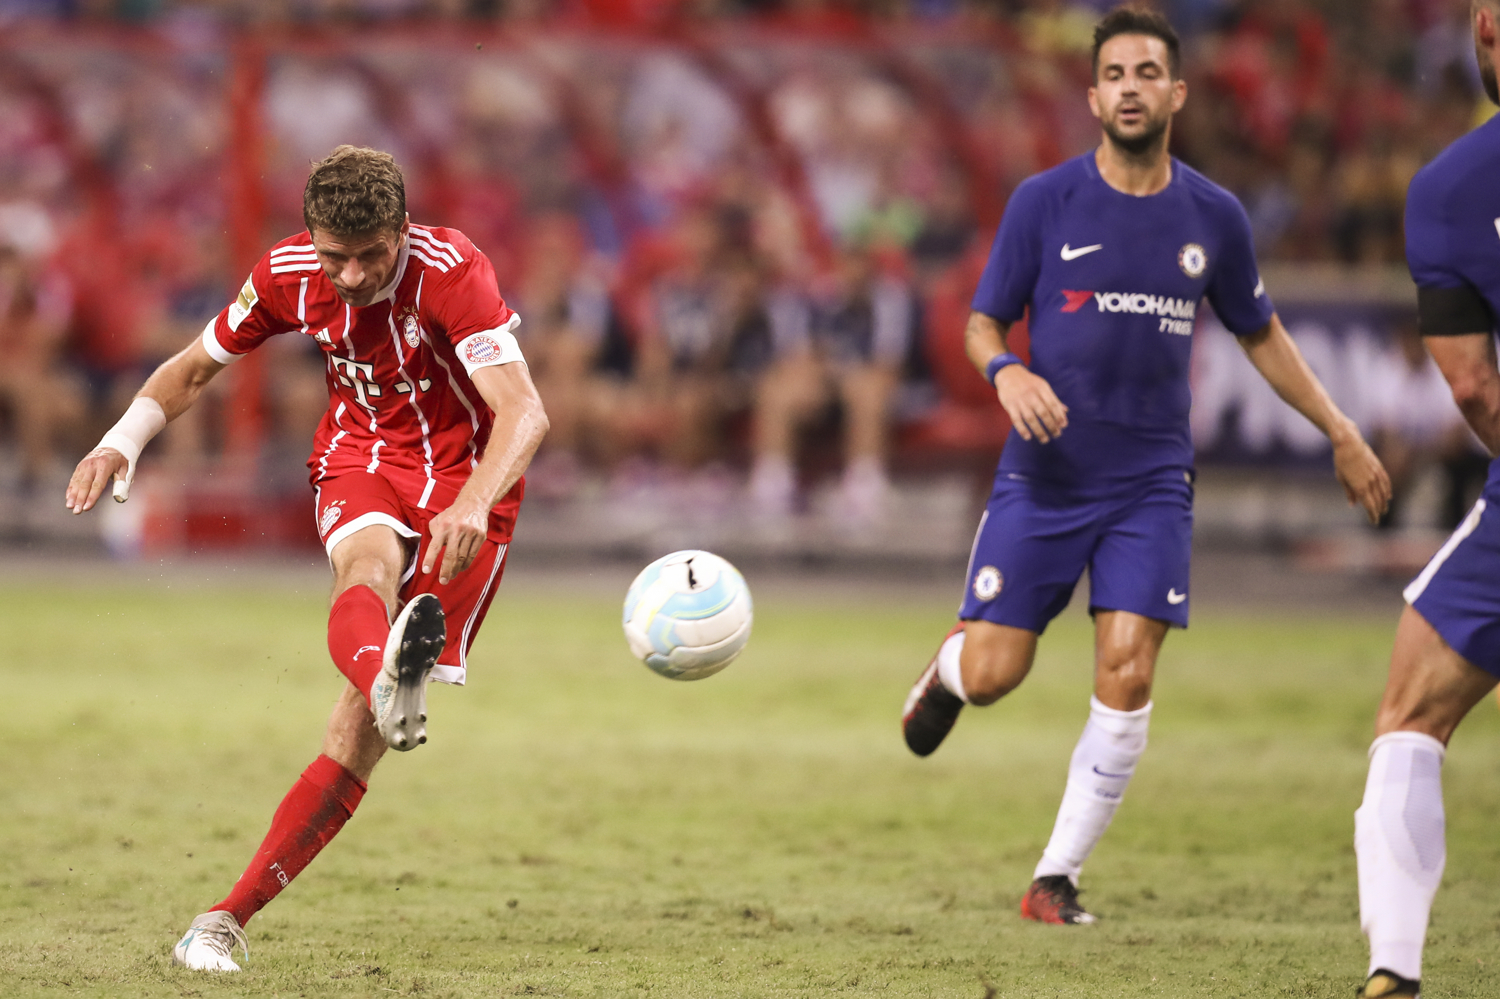 Soccer Football - Chelsea vs Bayern Munich - International Champions Cup - Singapore - July 25, 2017 Bayern Munich's Thomas Muller scores the third goal for his side REUTERS/Yong Teck Lim